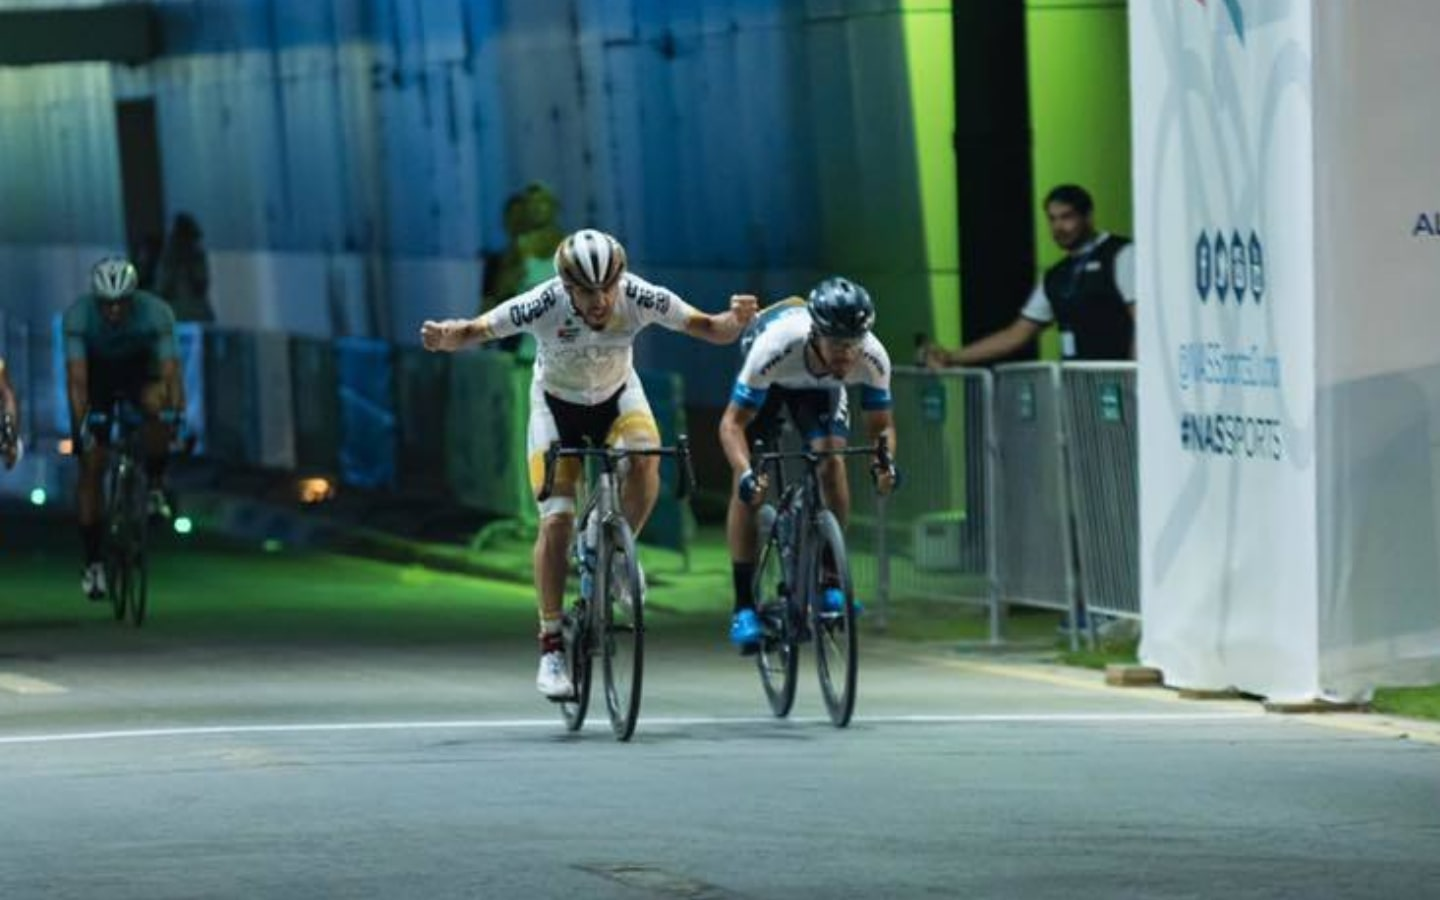 Cyclists at NAS Sports Tournament crossing the finish line